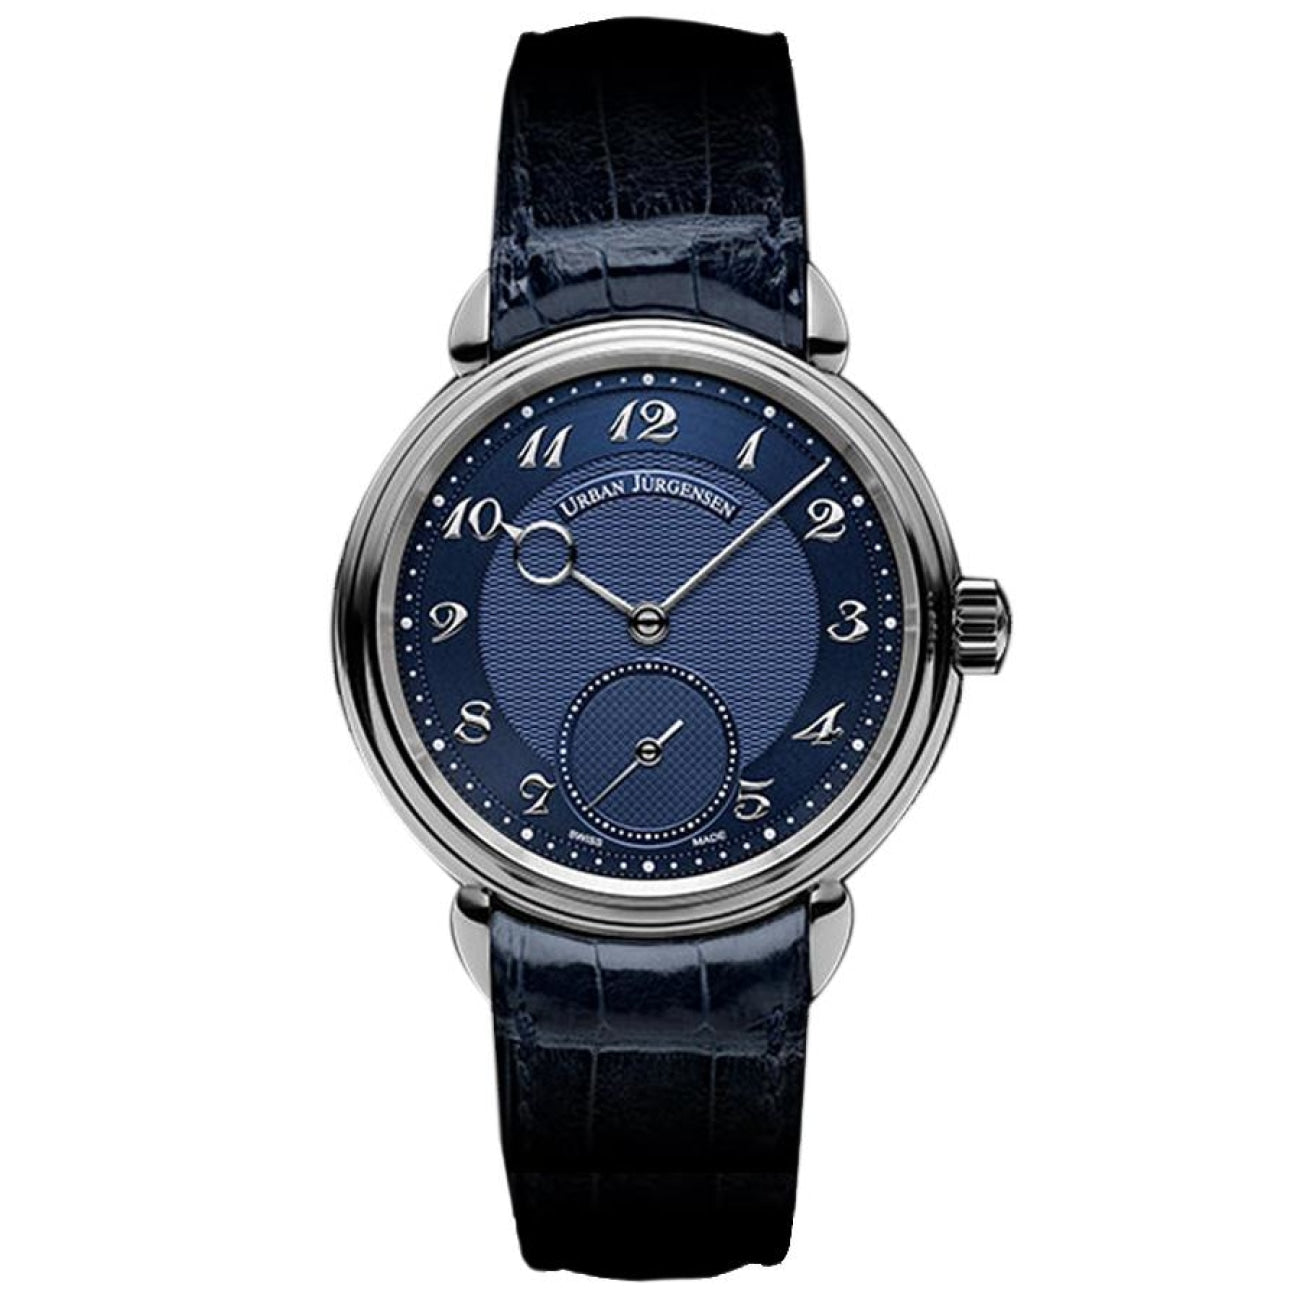 Urban Jurgensen Watches - 1140L PT BLUE | Manfredi Jewels